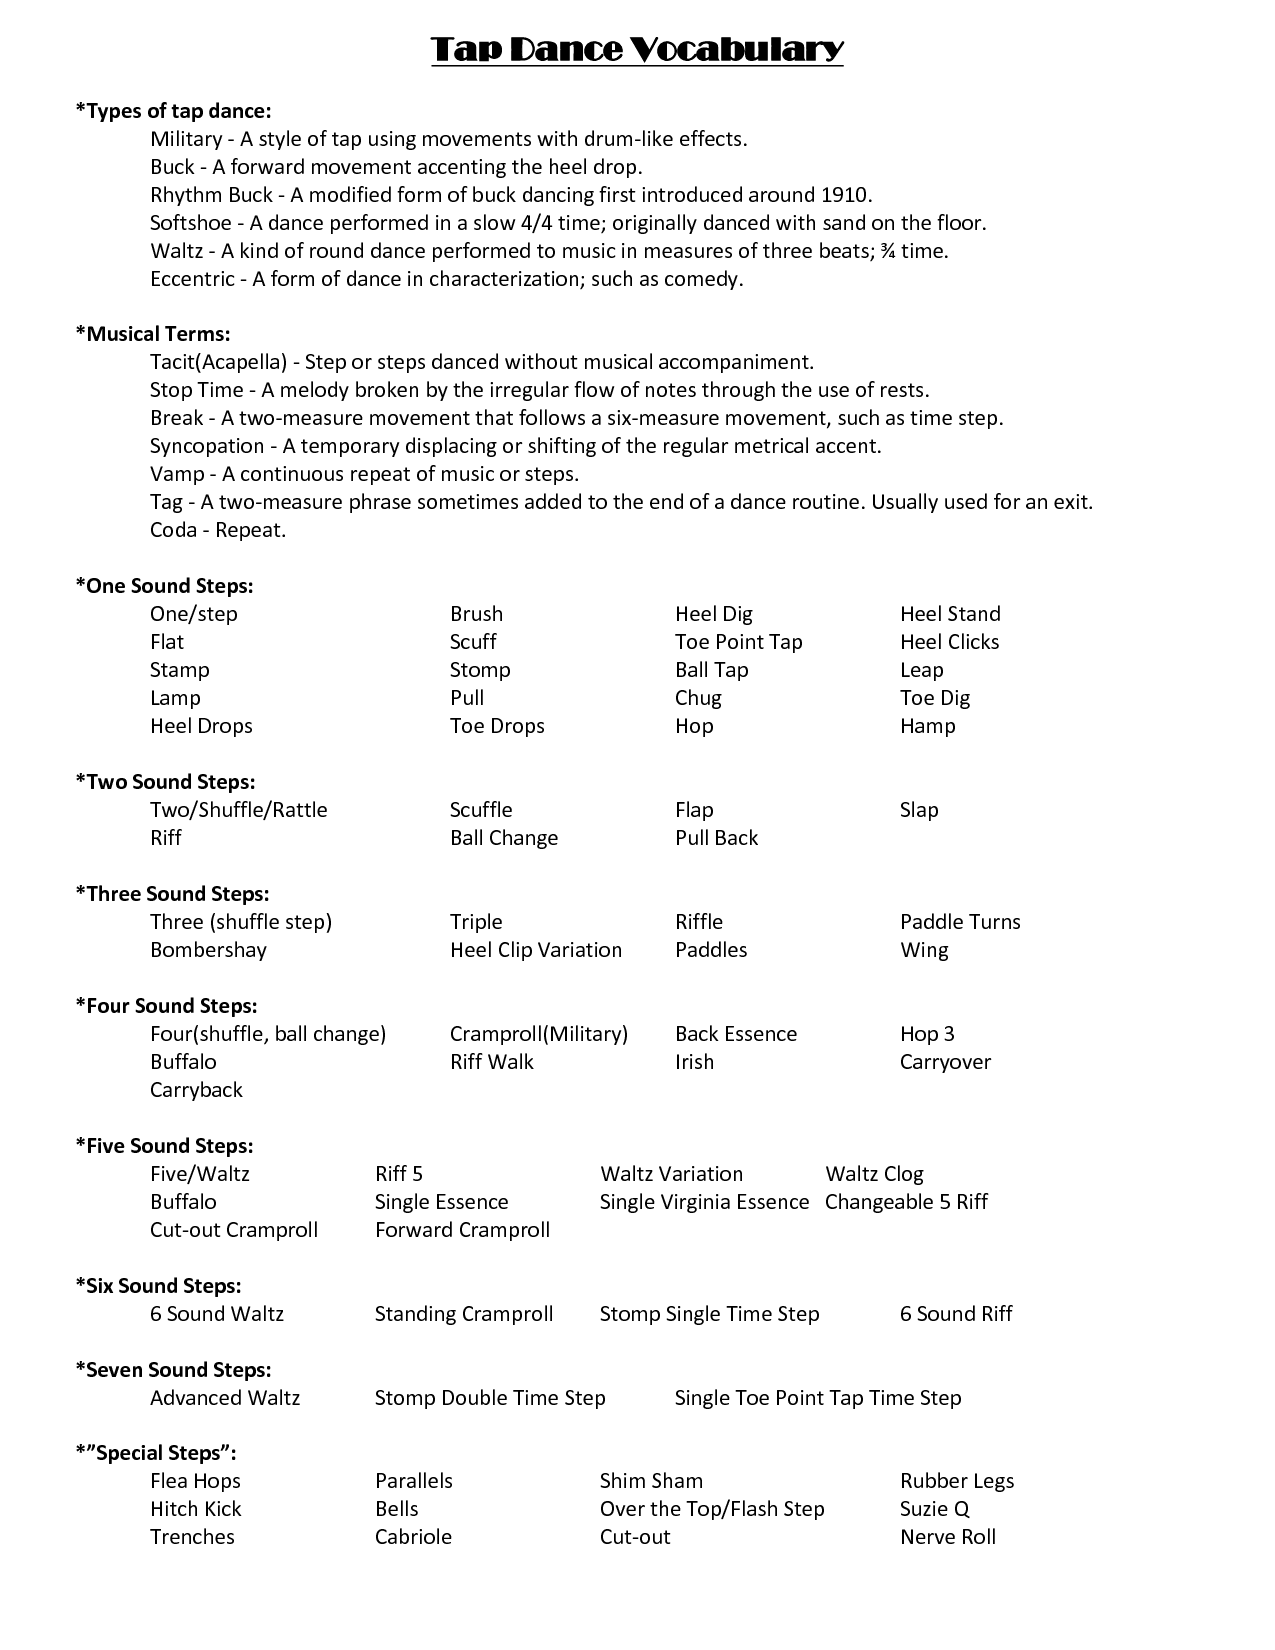 Freestyle - training elements of the Top and Waltz